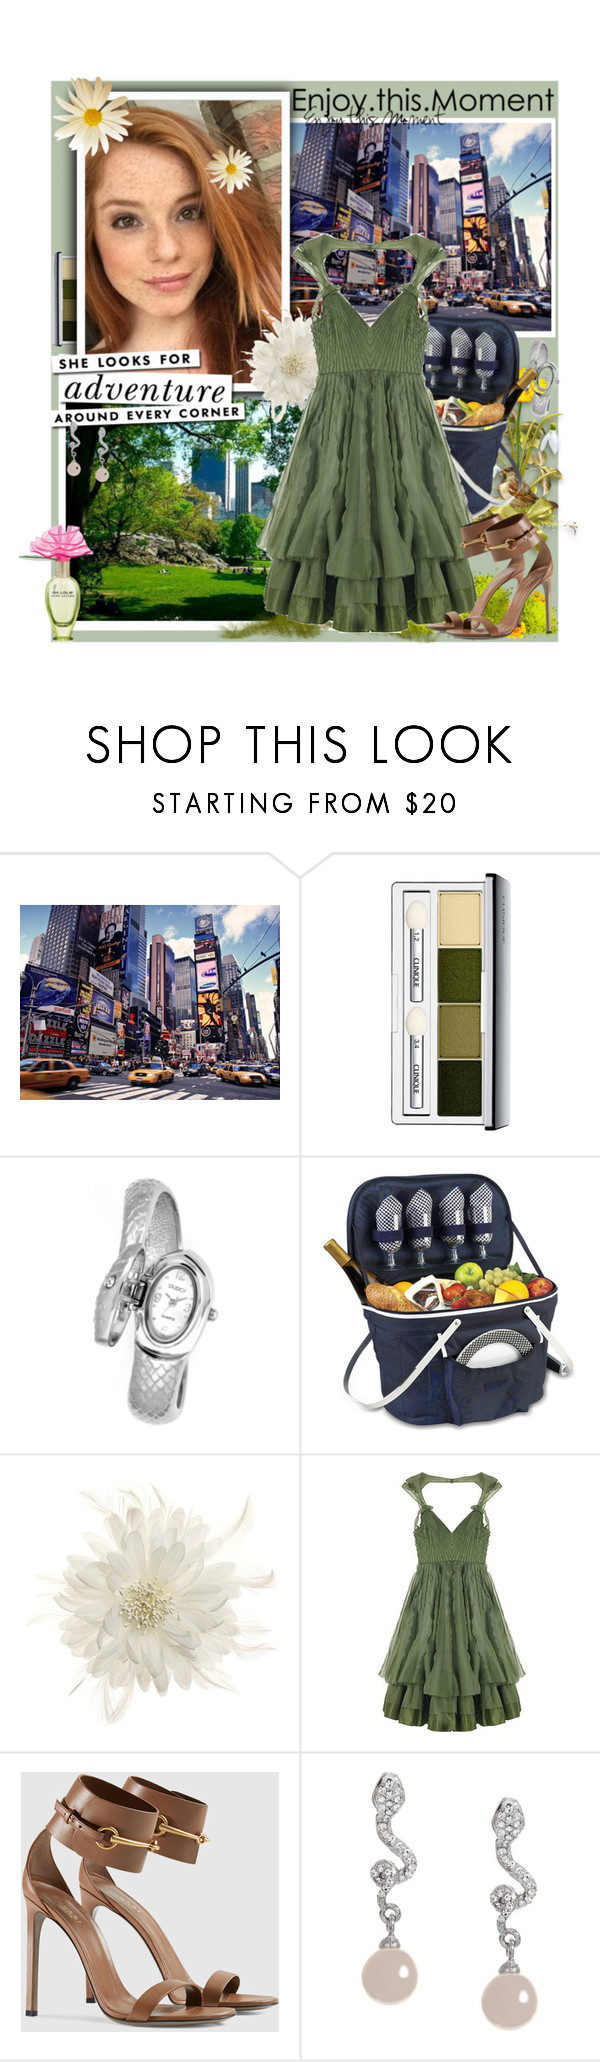 """Enjoy this moment"" by sasane ❤ liked on Polyvore featuring Clinique, Thos. Baker, Tasha, Zac Posen, Gucci, Kate Spade and Talullah Tu"